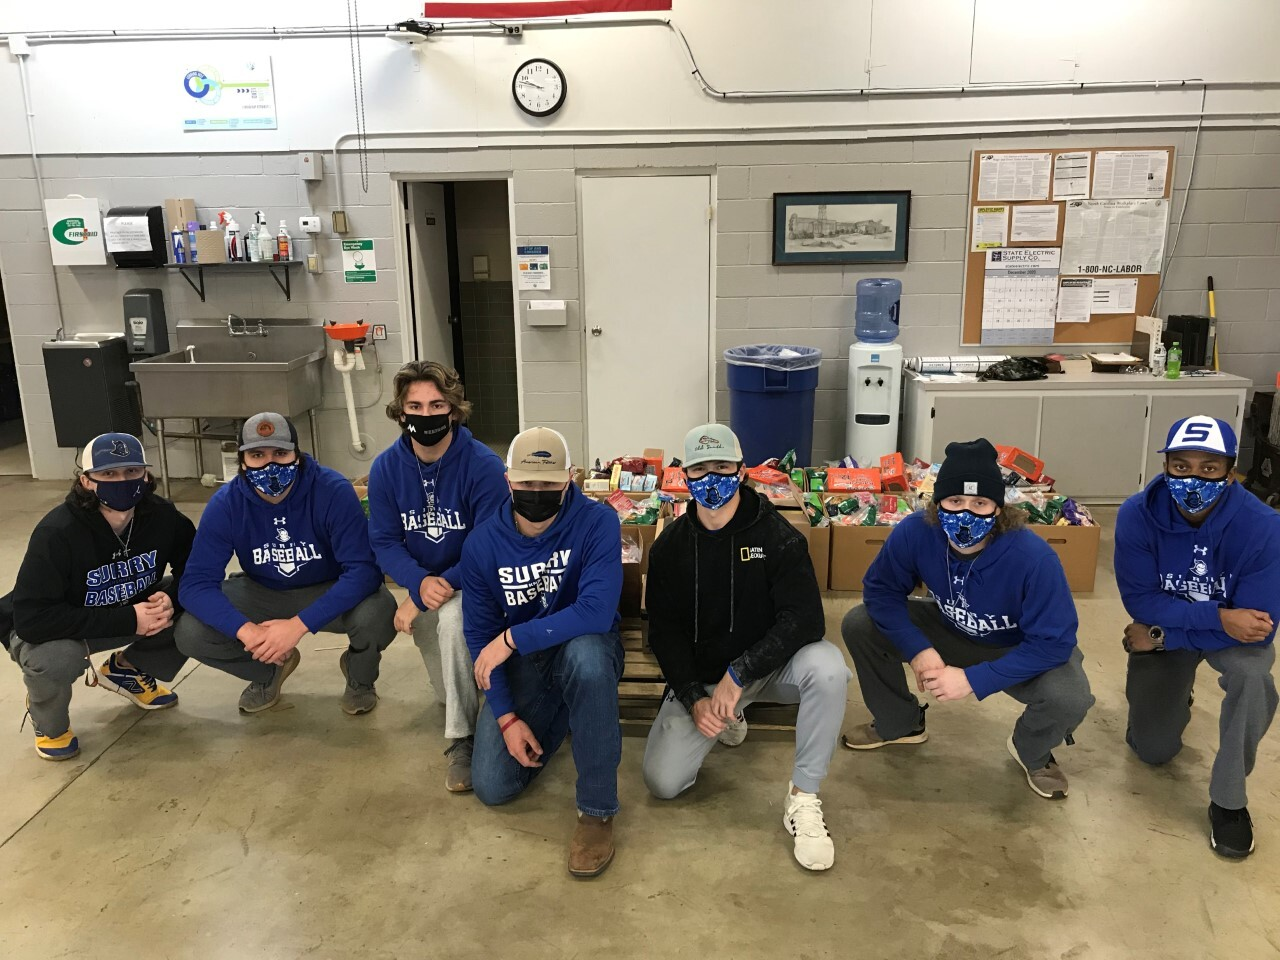 base ball team members post for picture after volunteering time